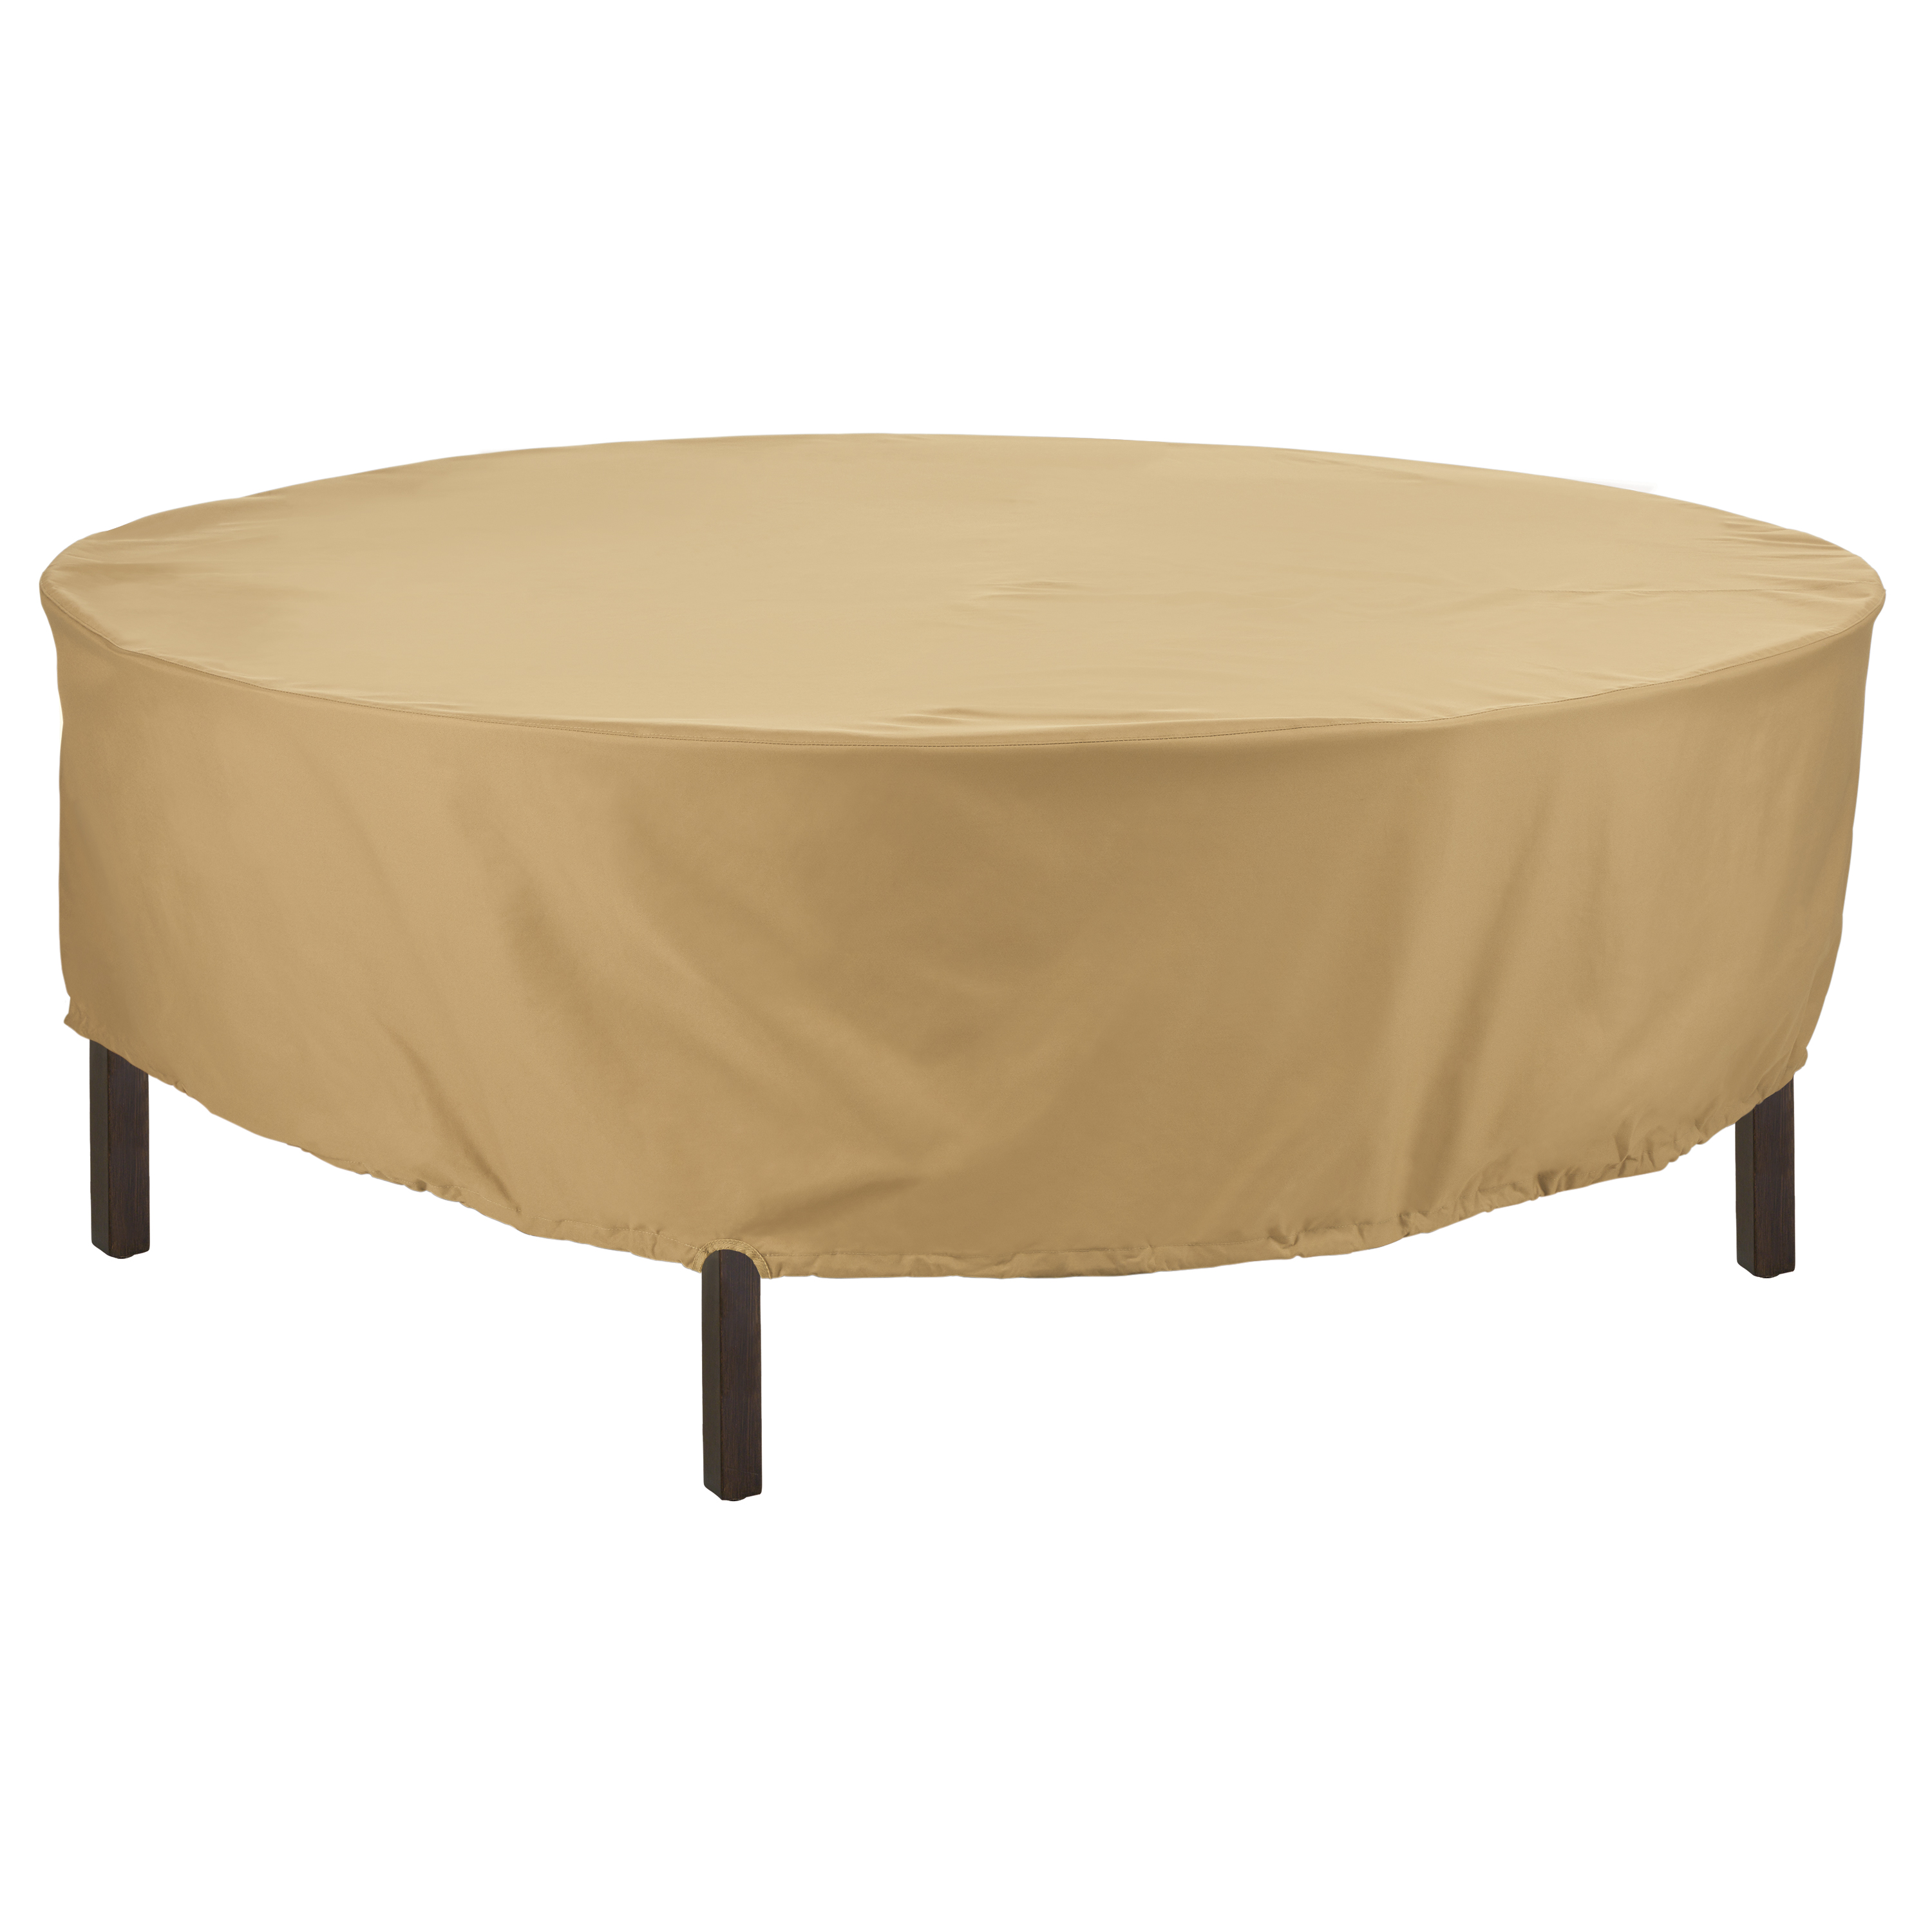 225 & Classic Accessories Terrazzo® Round Table Cover Patio - All Weather Protection Outdoor Furniture Cover 94\